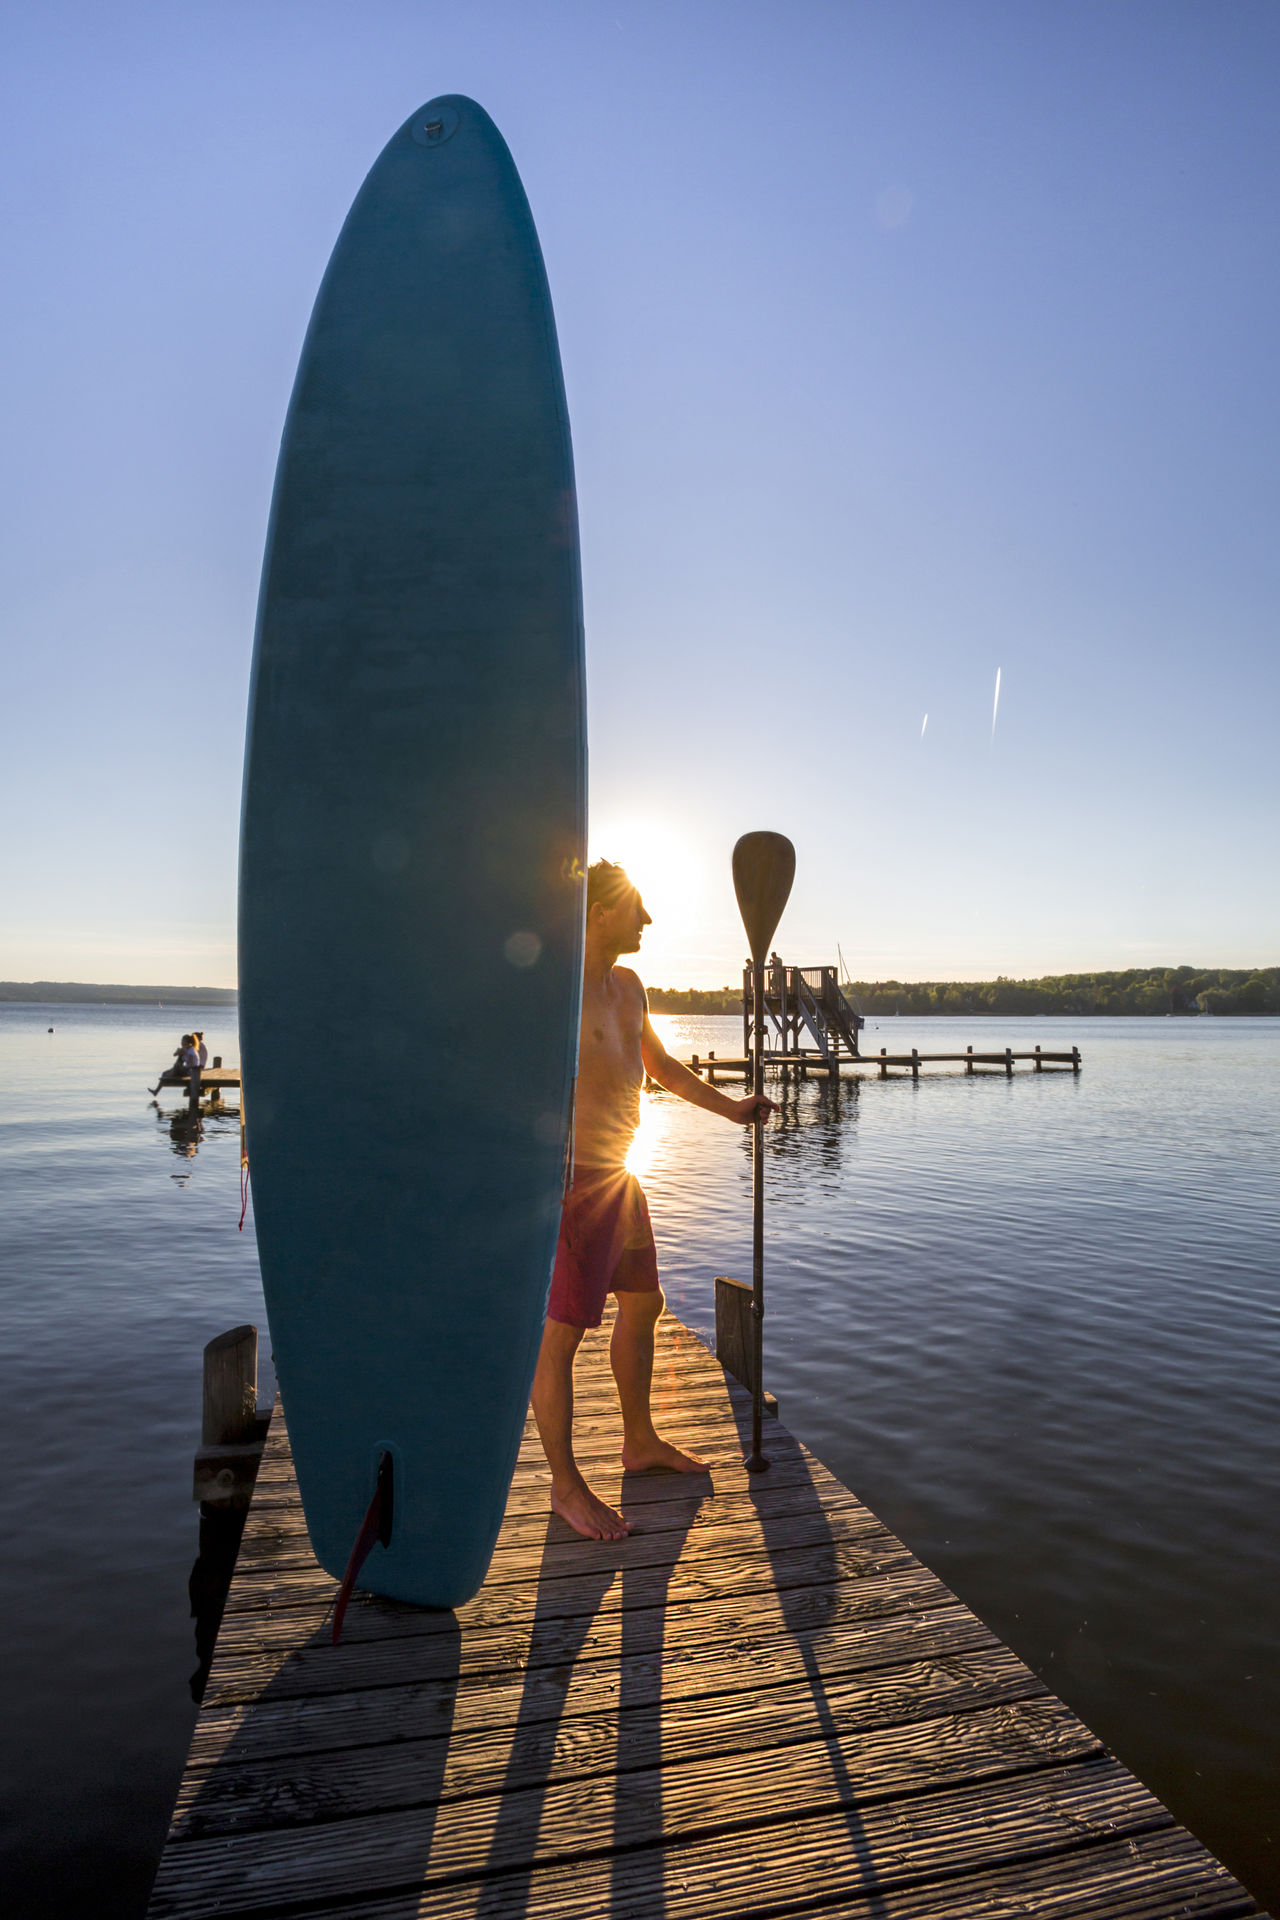 Standup paddler at the lake in sunset Bayern Beach Beauty In Nature Dawn Fitness Footbridge Holiday Lake Leisure Activity Lifestyles Man Outdoors Pier Portrait Recreation  Sports Standup Paddleboarding Standuppaddle Sunset Sup Surfer Travel Unfiltered Water Watersports